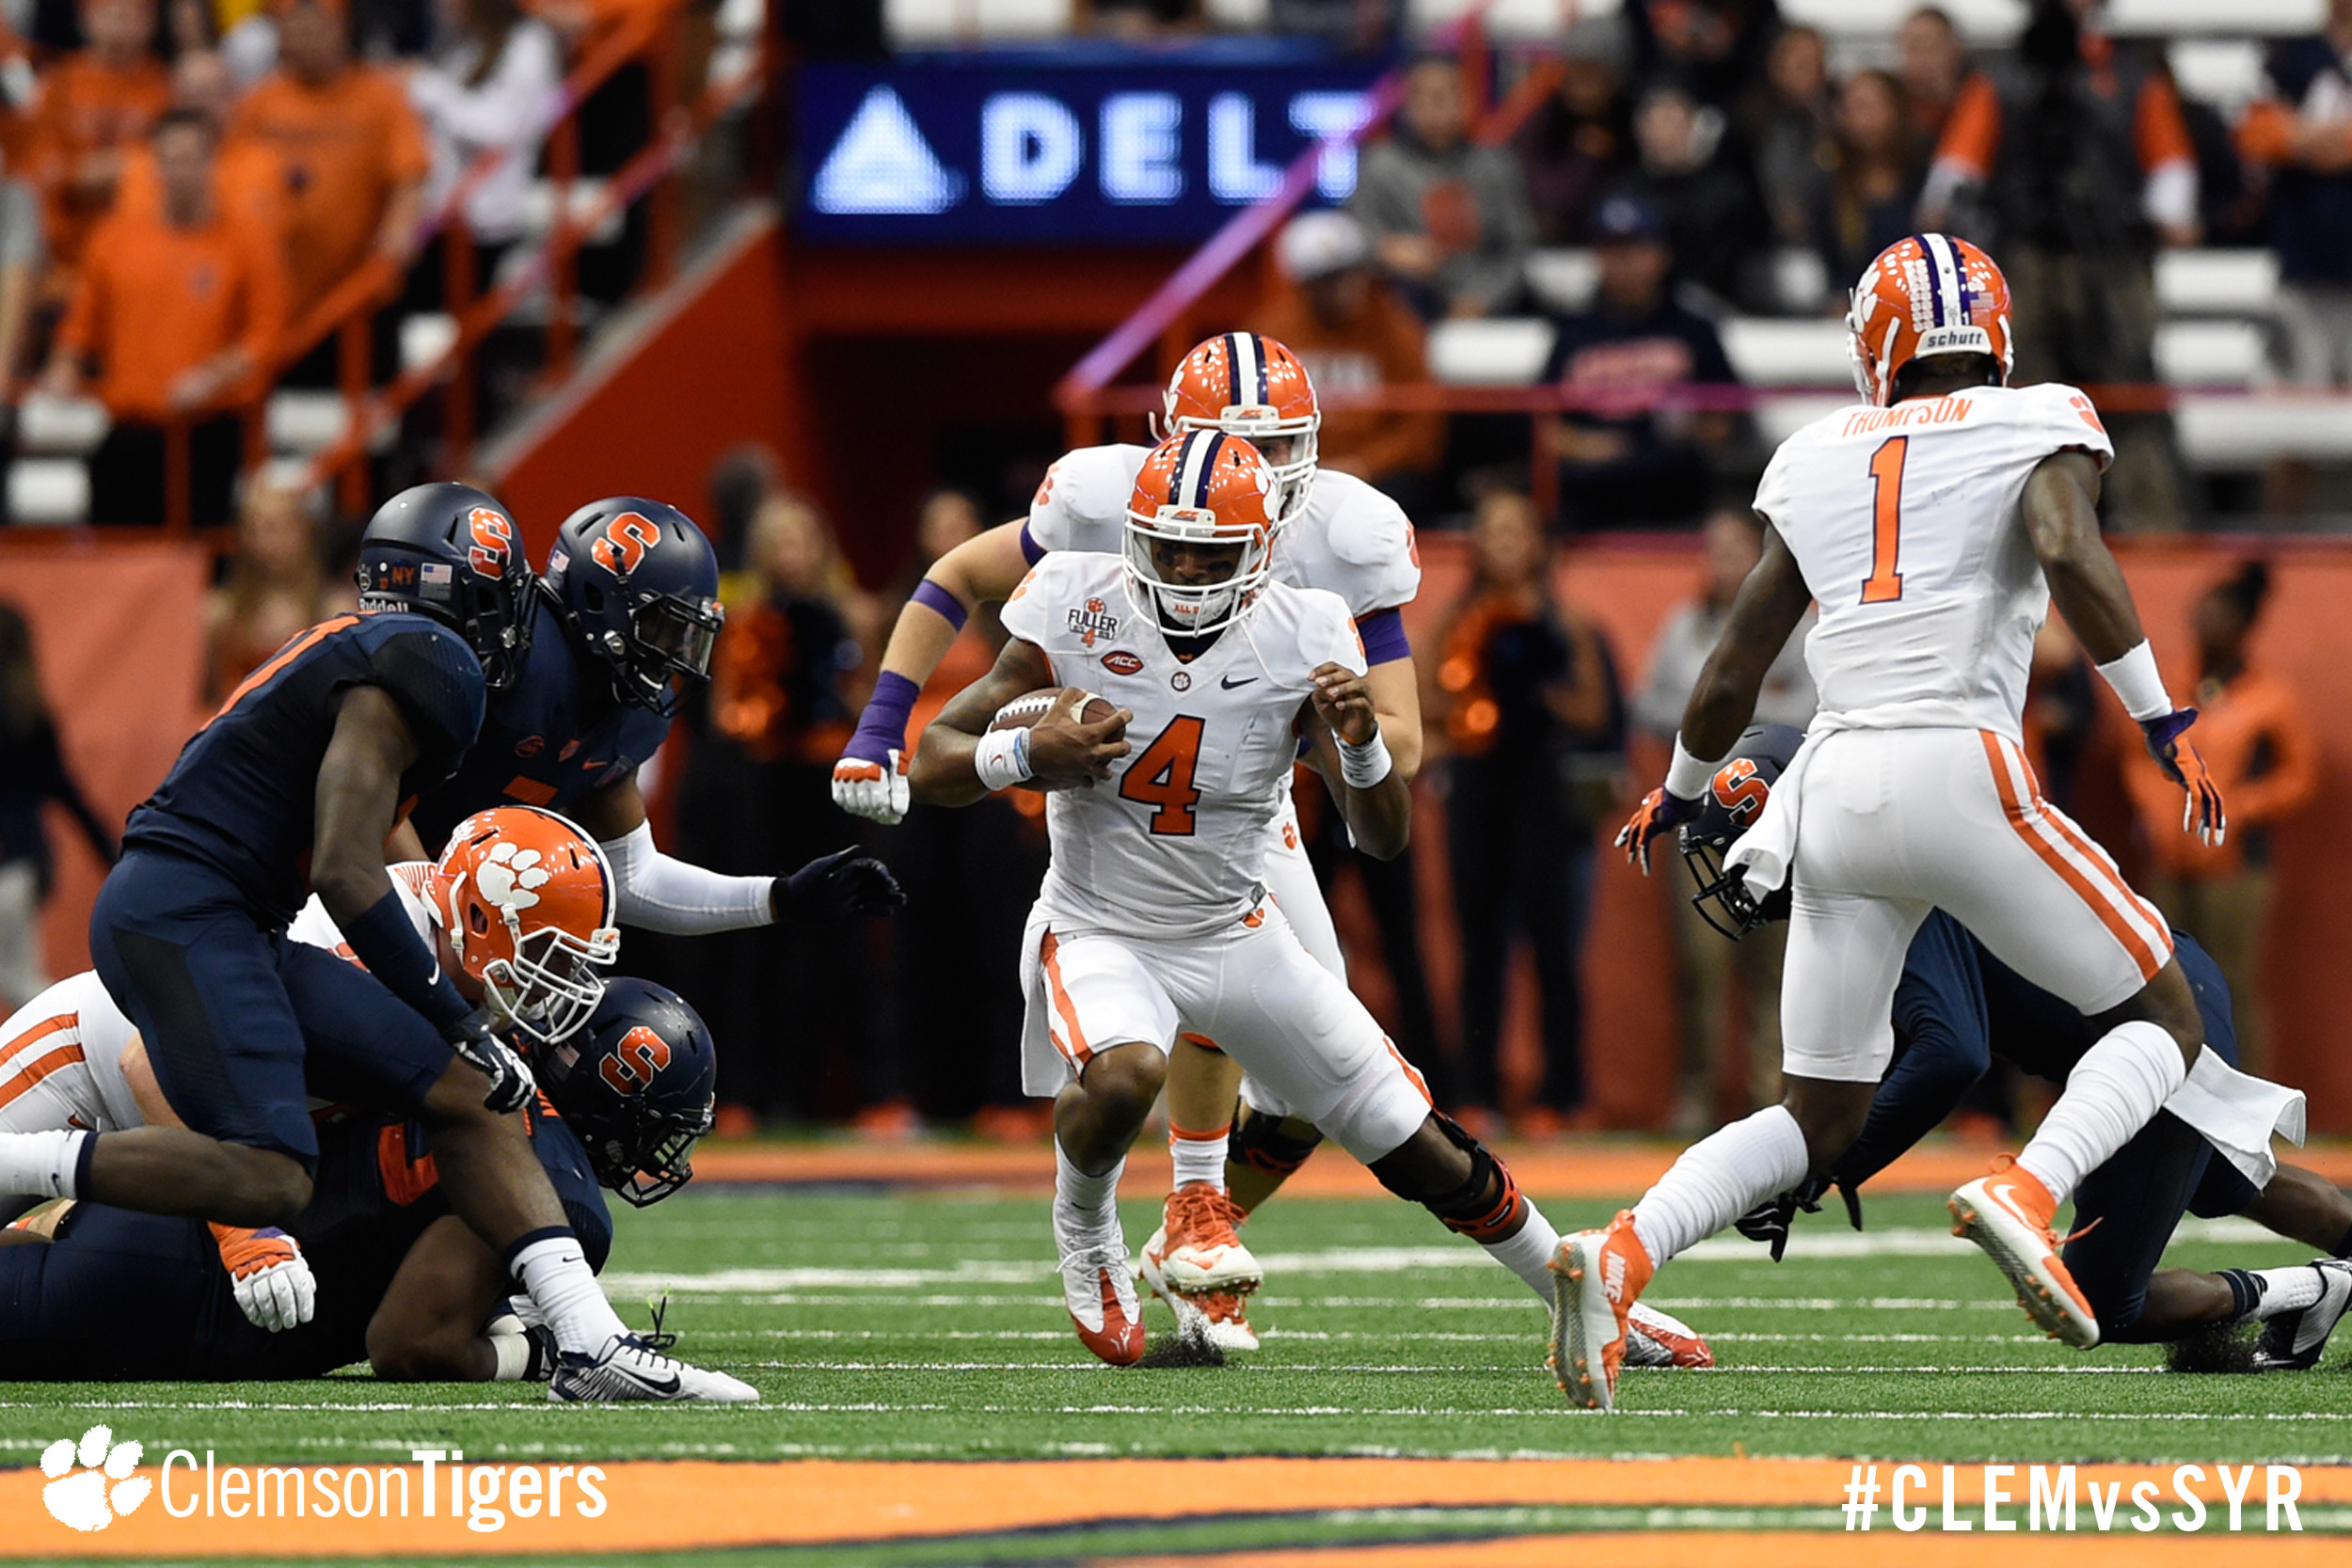 Watson Semifinalist for Walter Camp Player of the Year